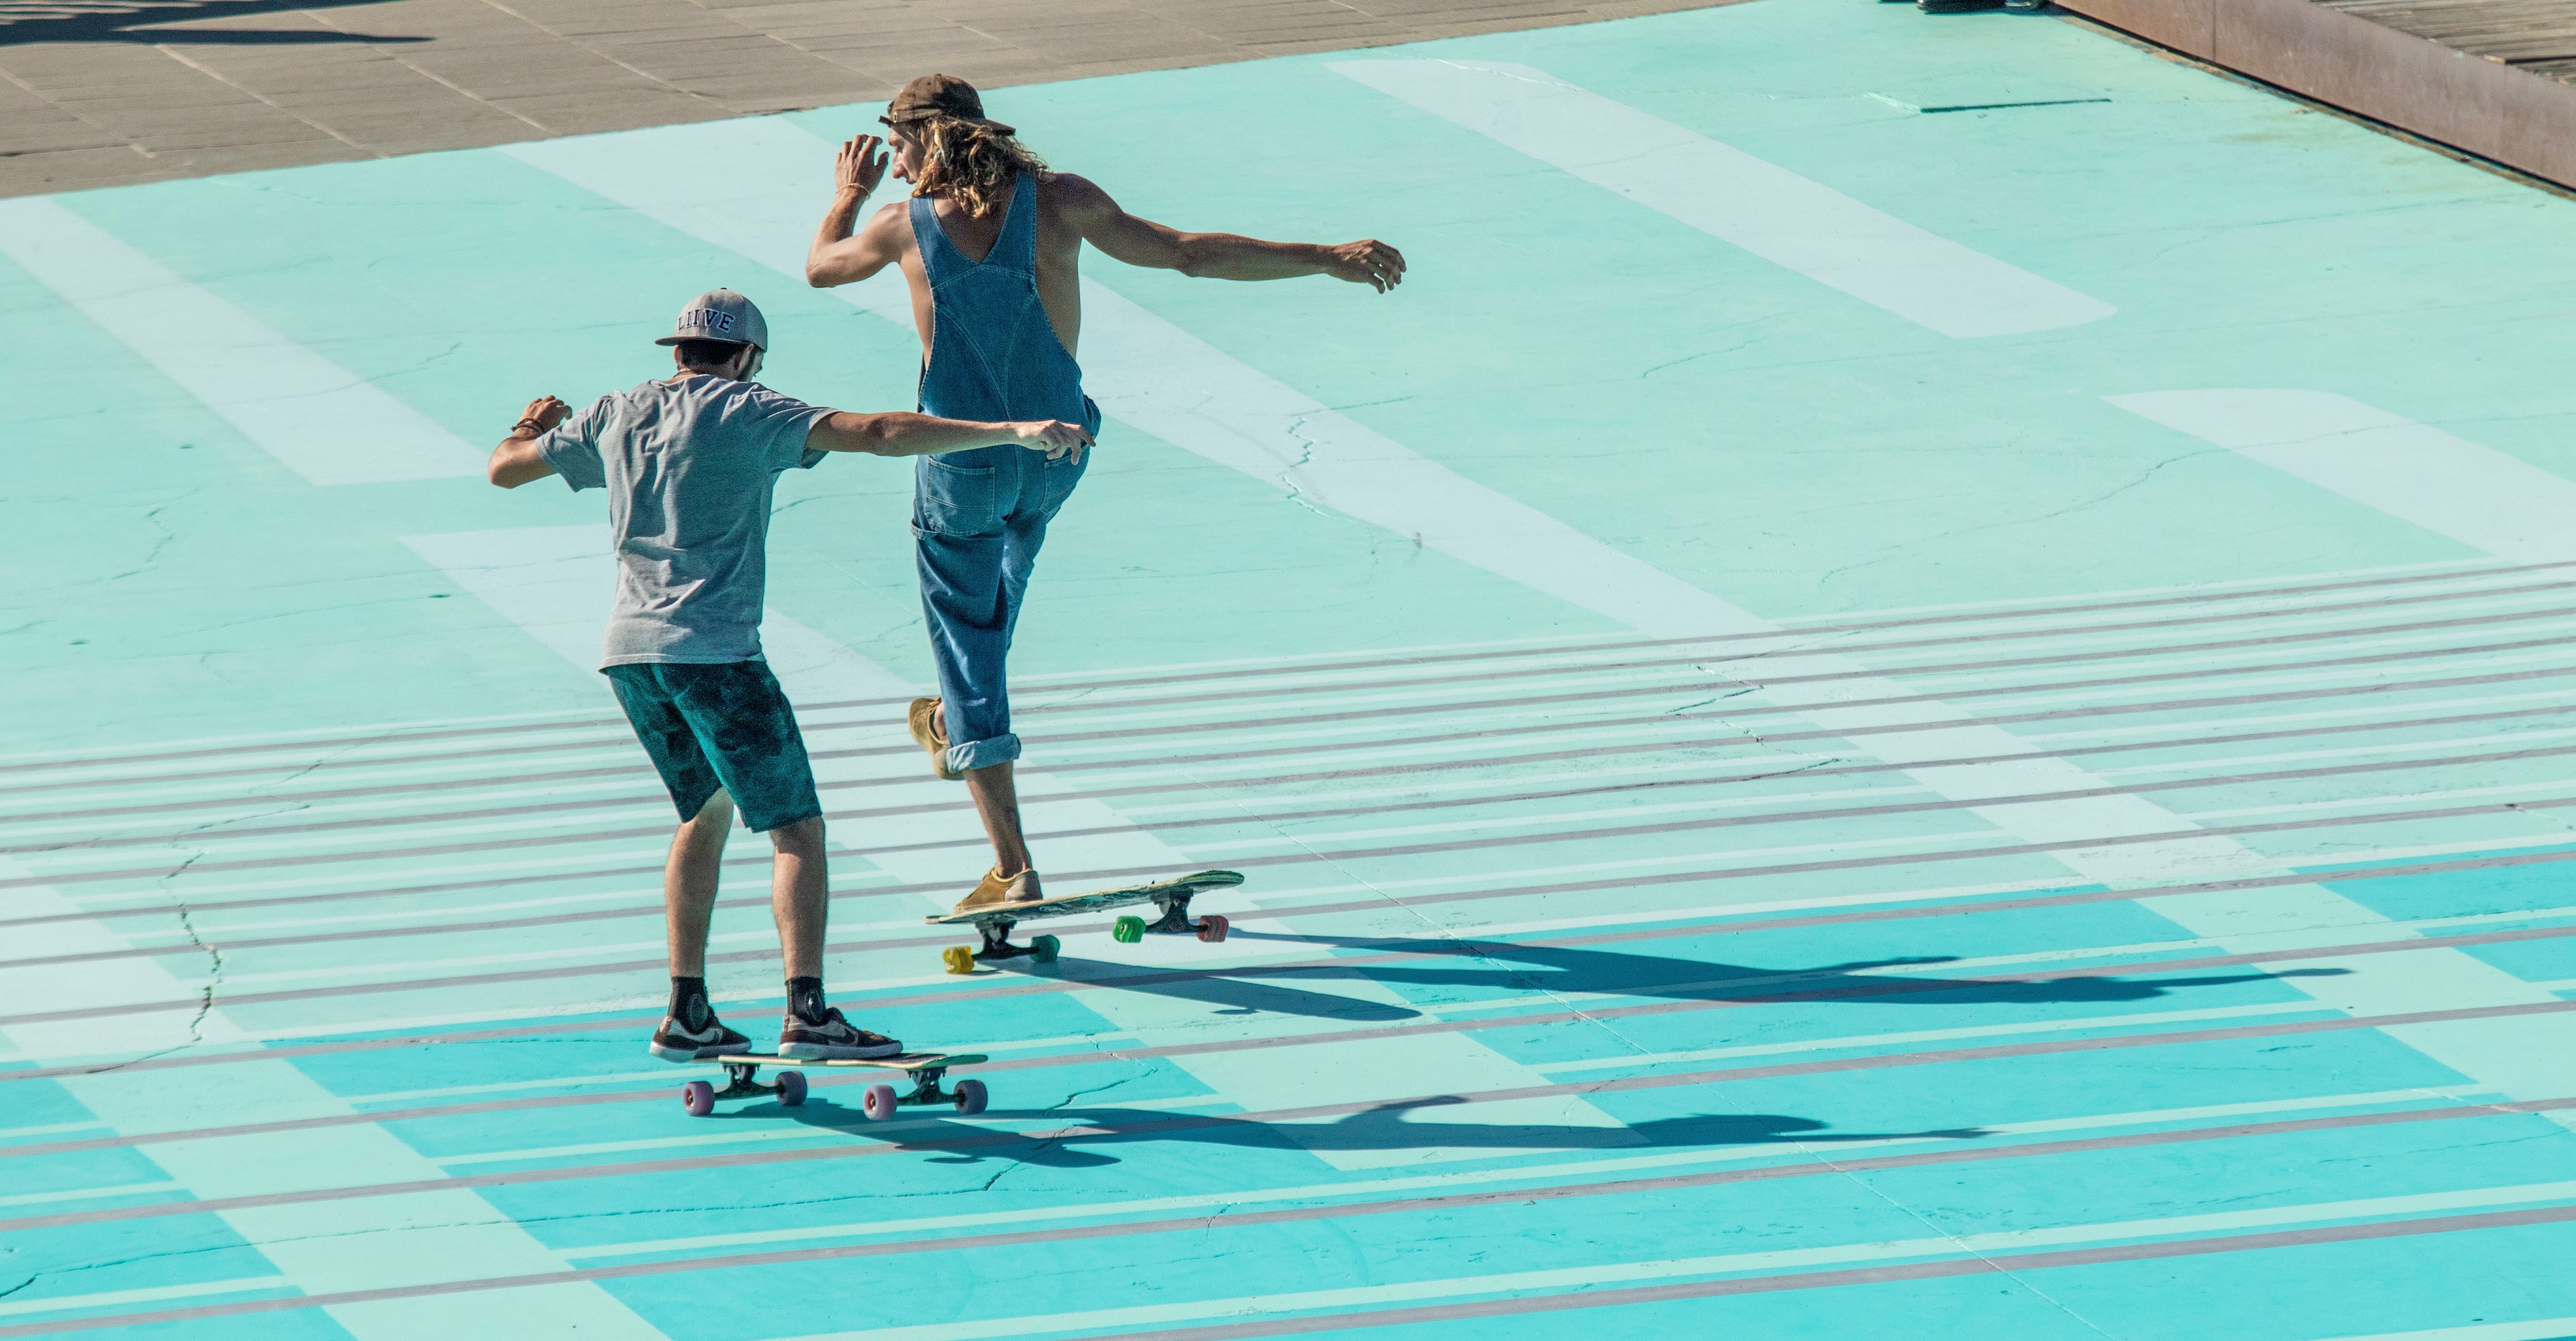 two guys playing on skateboards on light blue ground